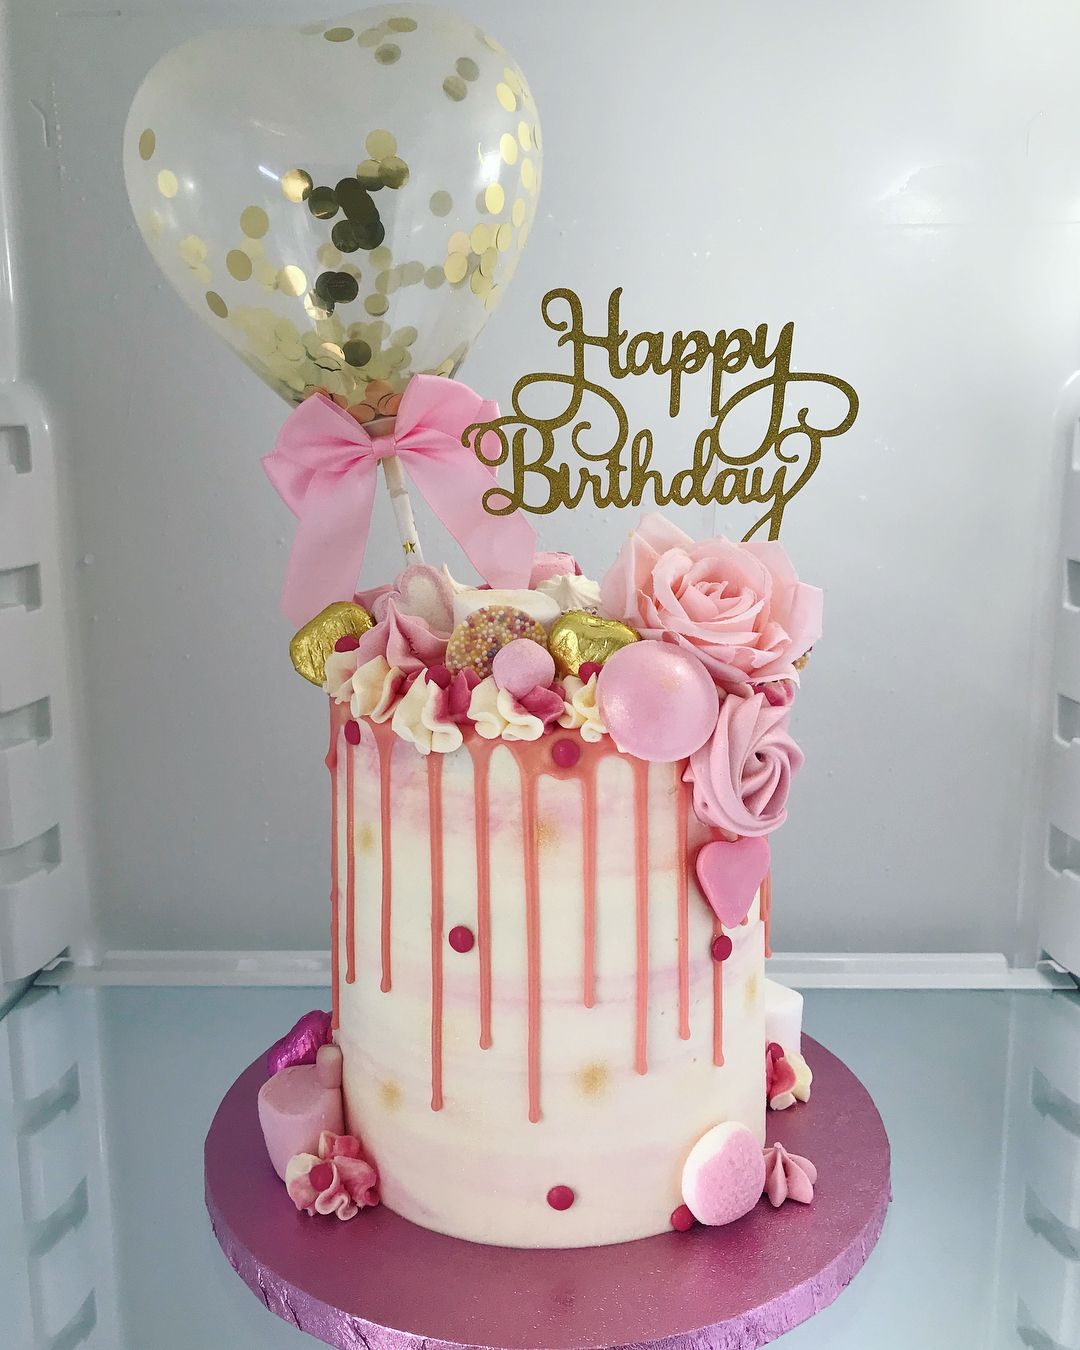 Lots of pink this week. Happy birthday Balloon cake for